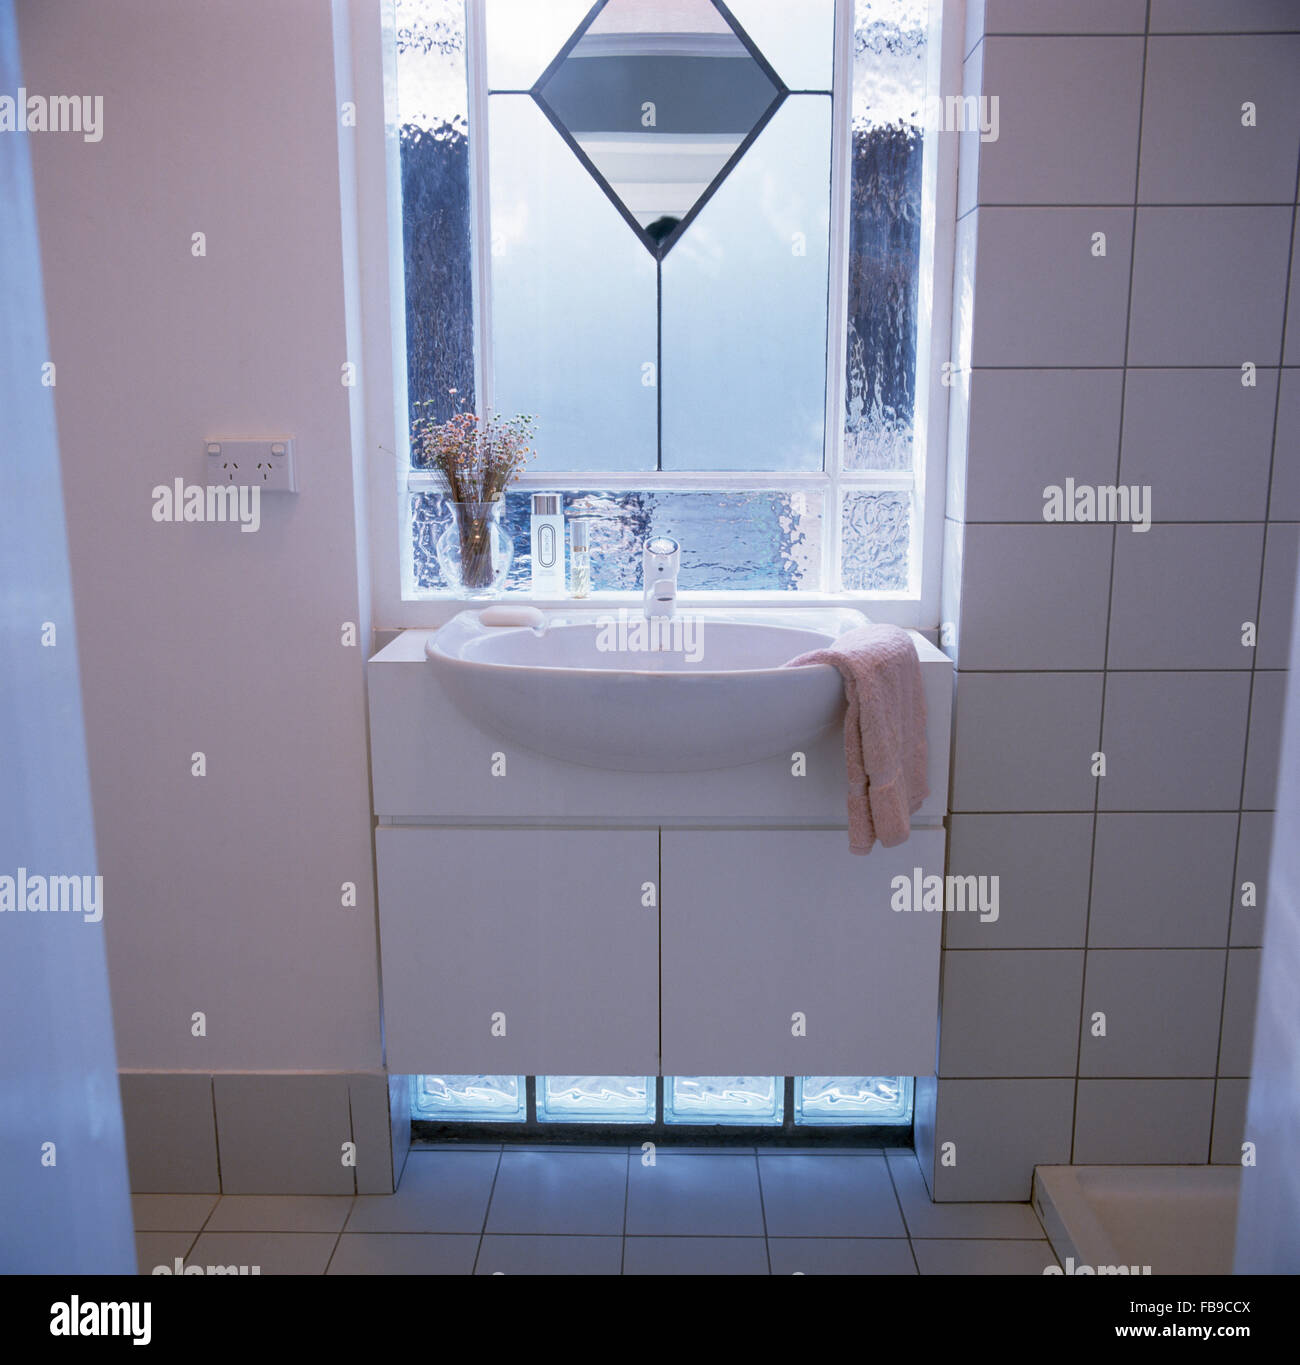 Engraved and opaque glass window above fitted basin in nineties tiled bathroom - Stock Image